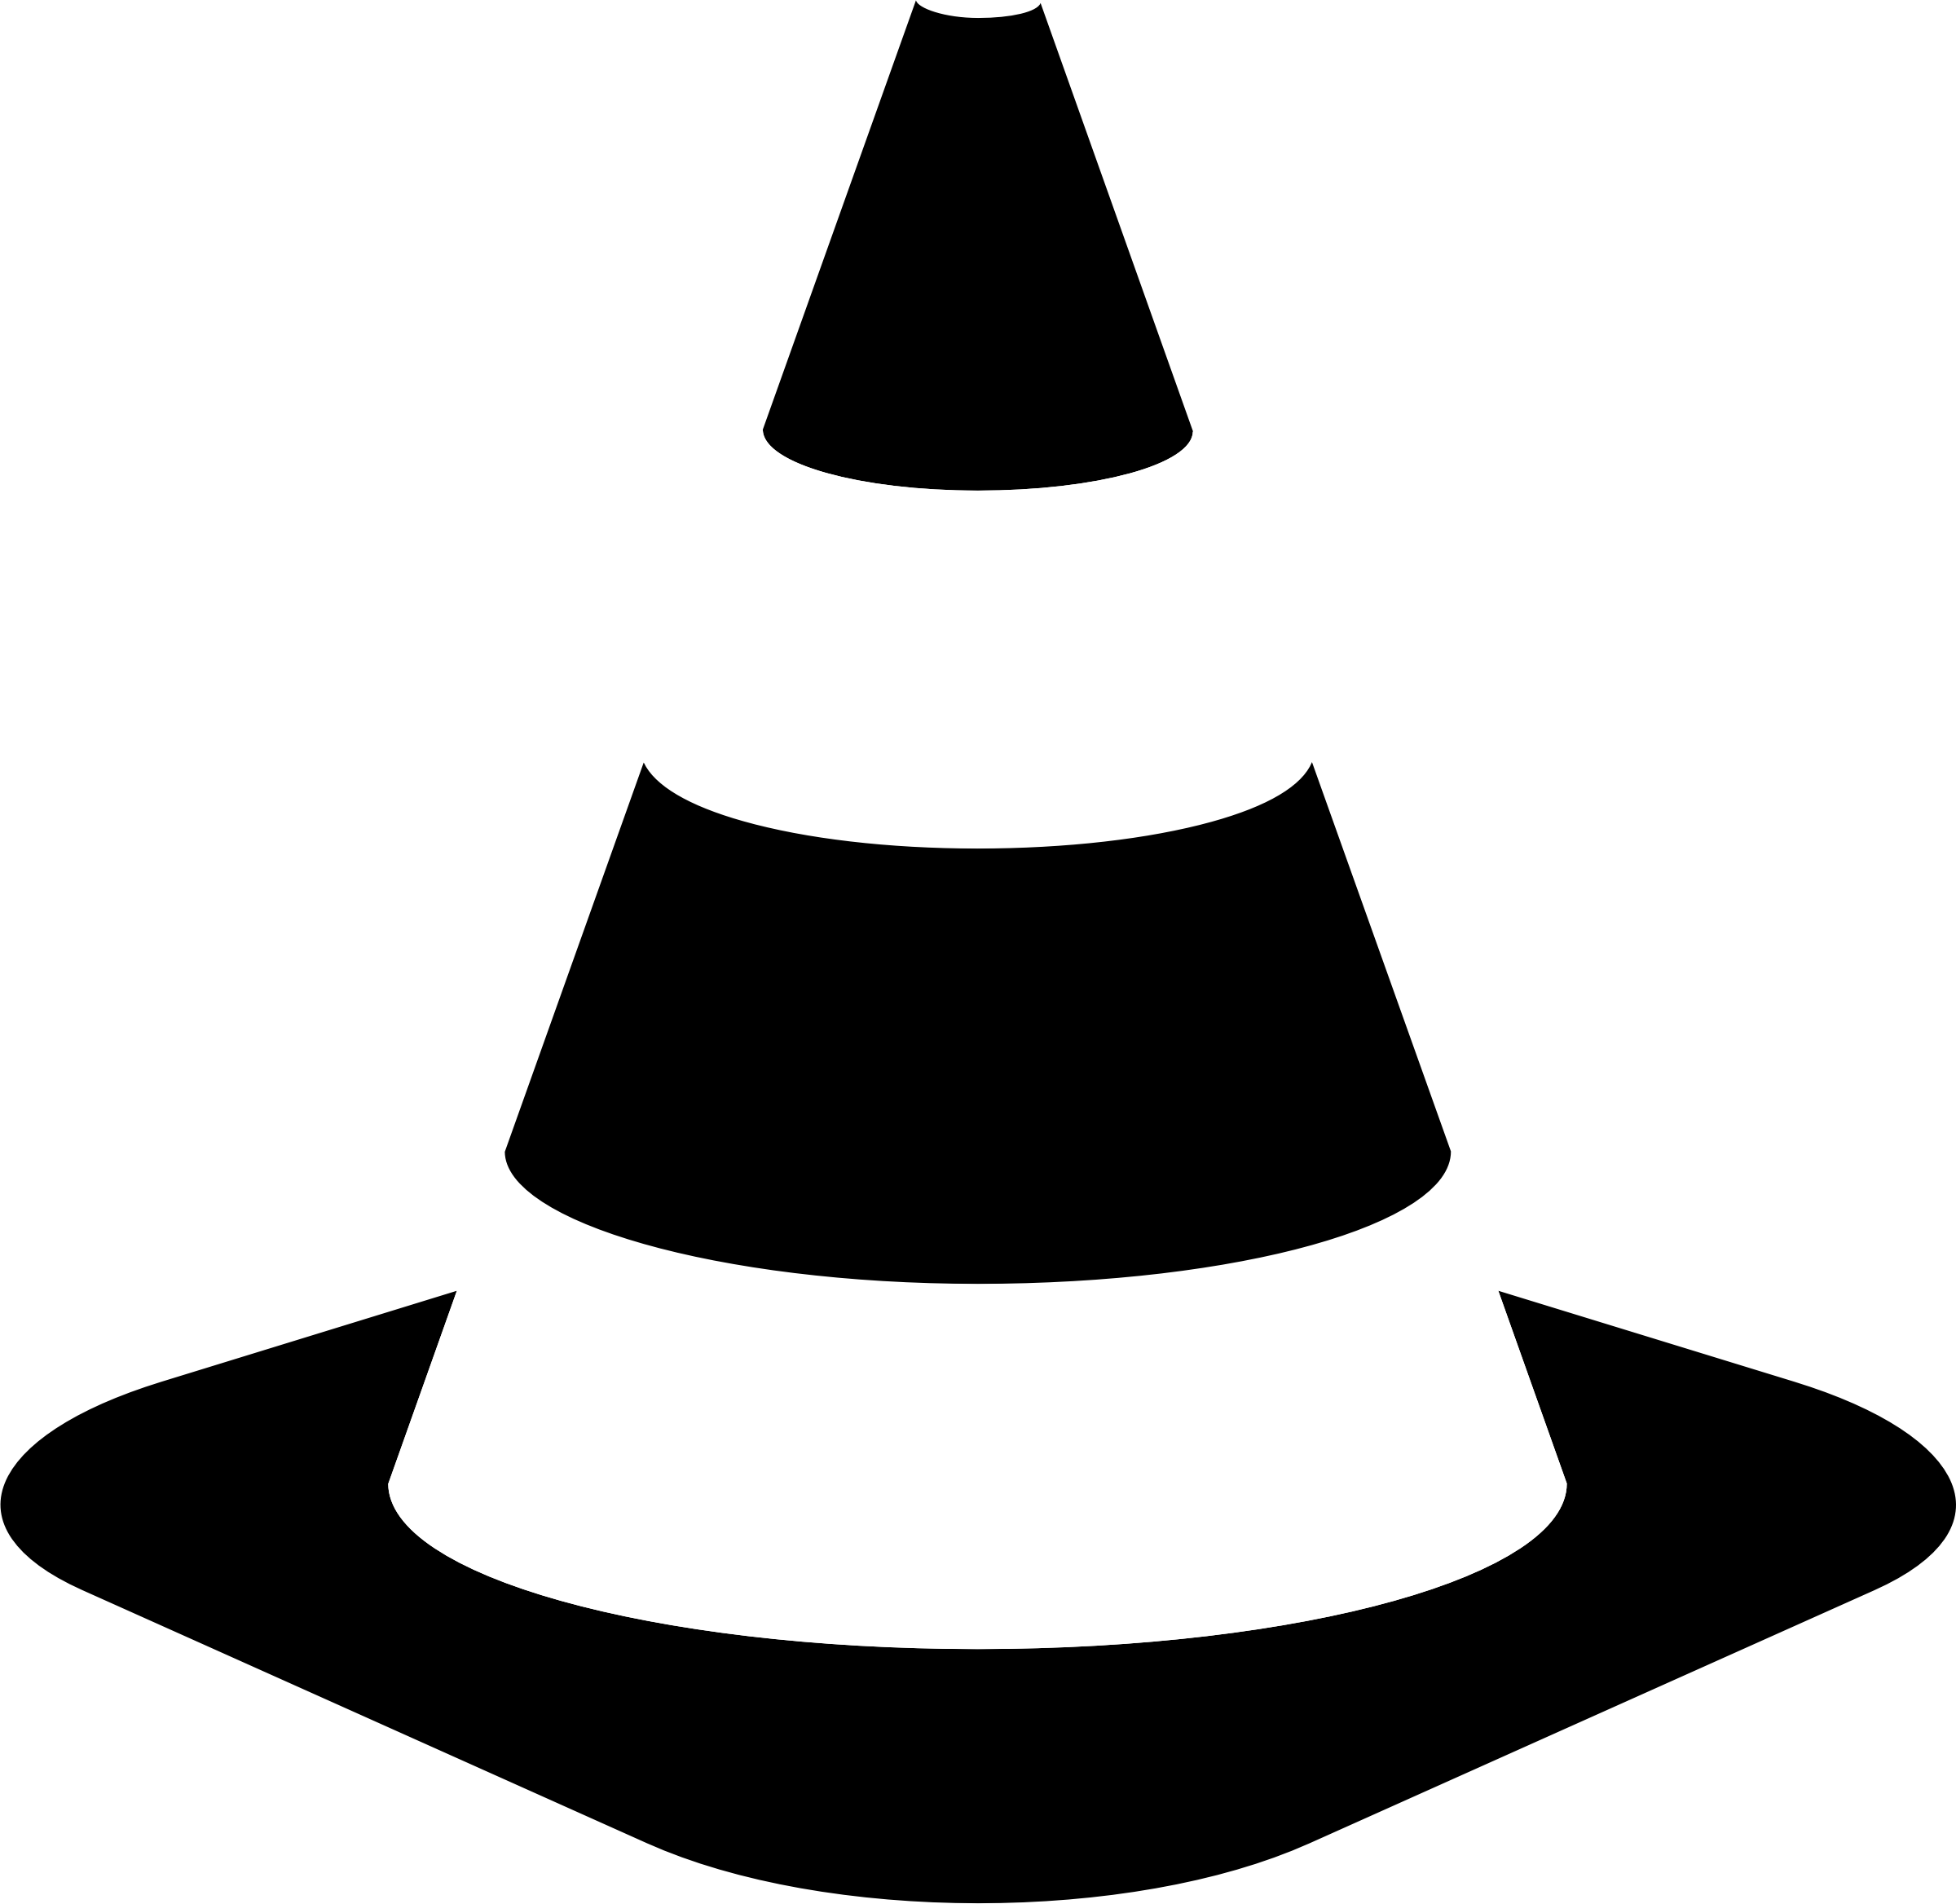 black-and-white-traffic-cones.png